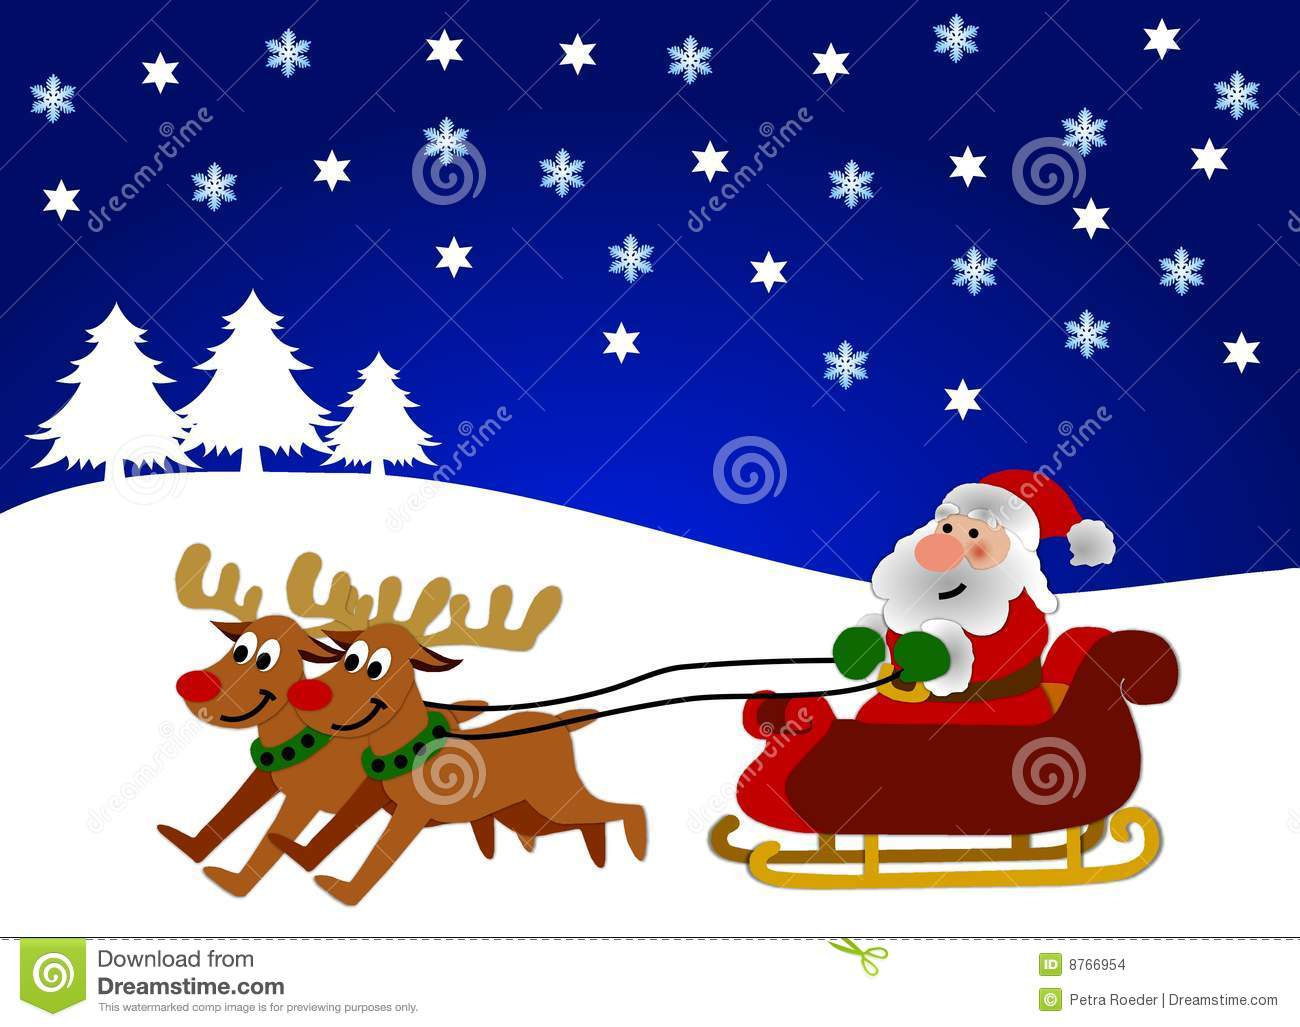 Illustration of reindeer pulling Santa Claus on sleigh in wintry ...